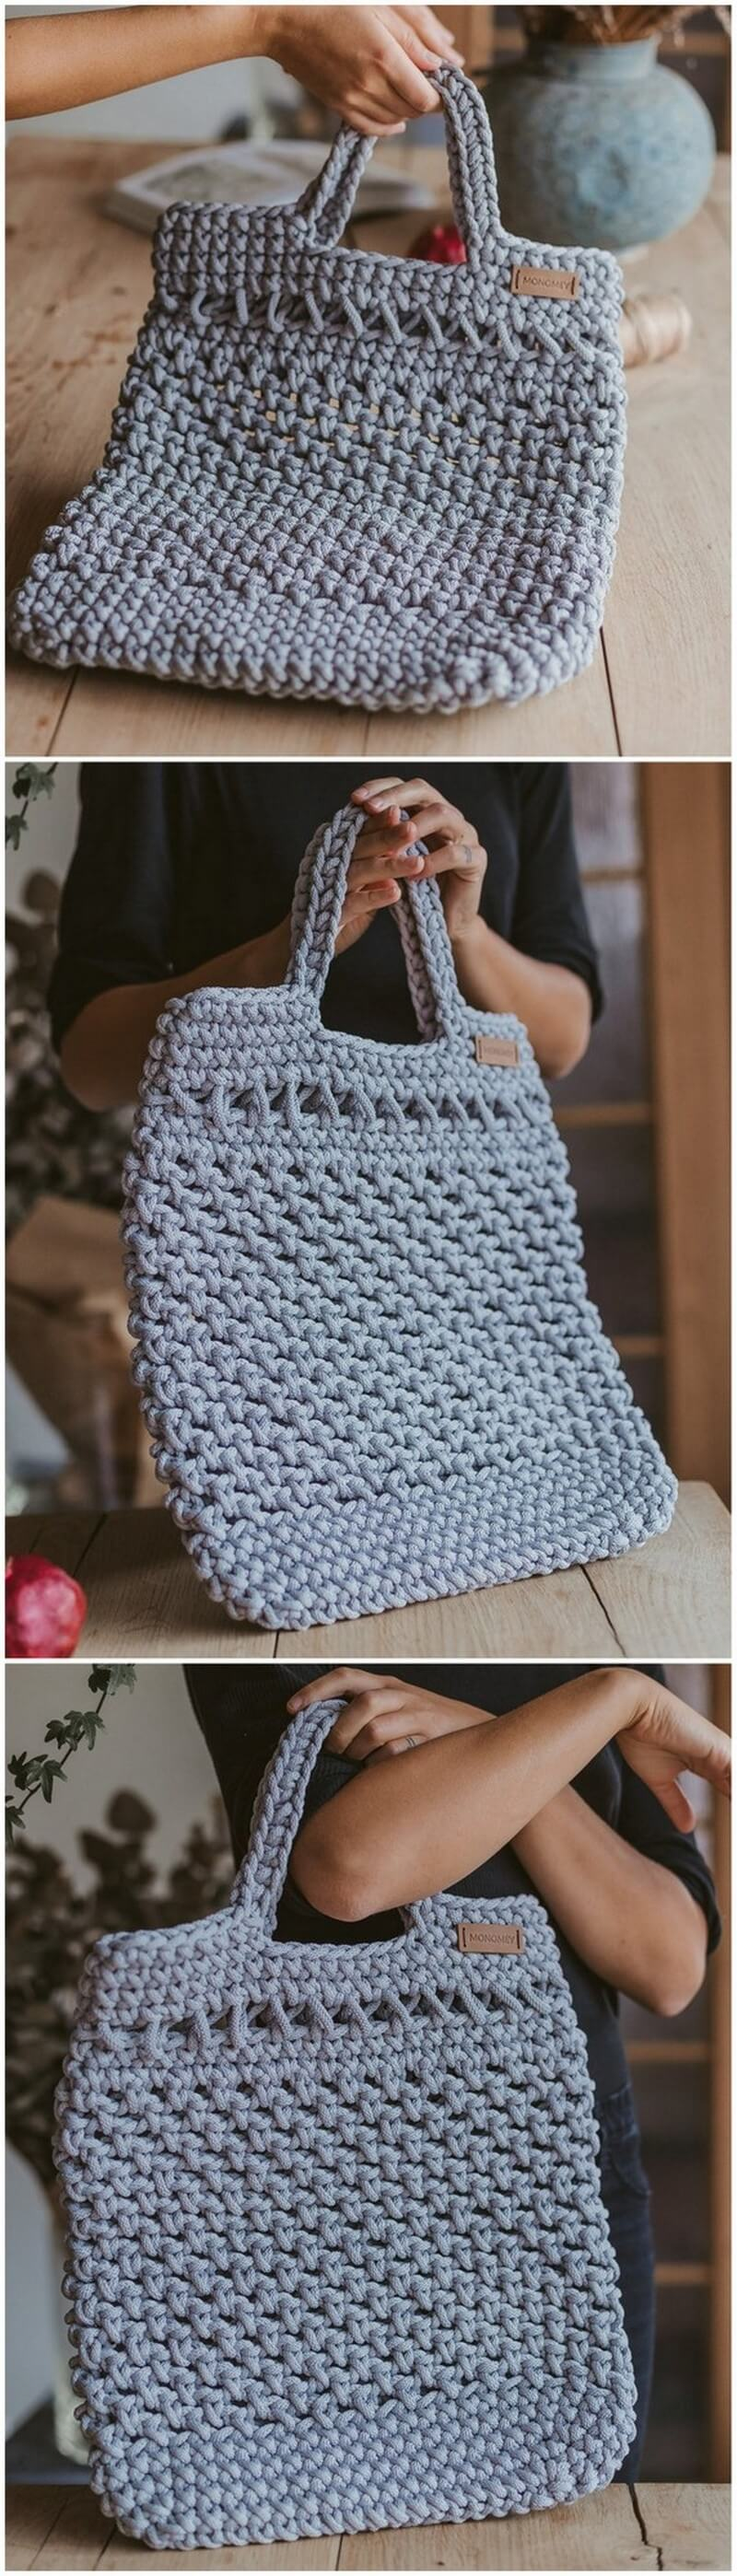 Crochet Bag Pattern (58)